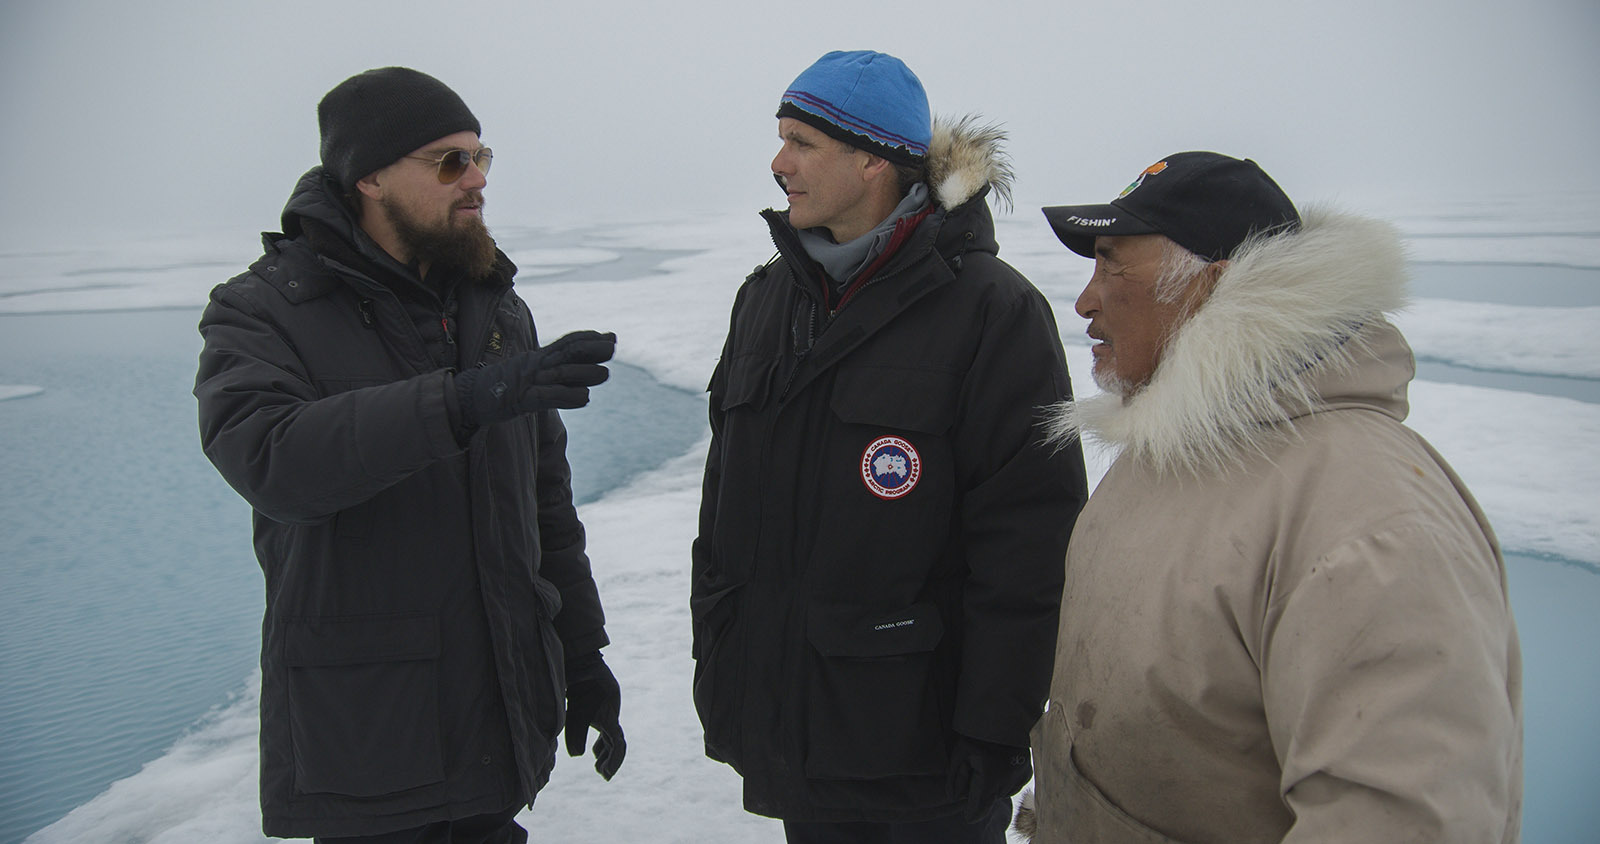 BAFFIN ISLAND, CANADIAN ARCTIC - (From left to right):  Leonardo DiCaprio, Enric Sala, National Geographic Explorer-in-Residence, and Jake Awa, Arctic Guide, Pond Inlet.  For two years, Leonardo DiCaprio has criss-crossed the planet in his role as UN messenger of Peace on Climate Change. This film, executive produced by Brett Ratner and Martin Scorsese, follows that journey to find both the crisis points and the solutions to this existential threat to human species.  The climate change feature documentary 'Before the Flood' airs globally on the National Geographic Channel October 30.(photo credit:  © 2016 RatPac Documentary Films, LLC and Greenhour Corporation, Inc.)